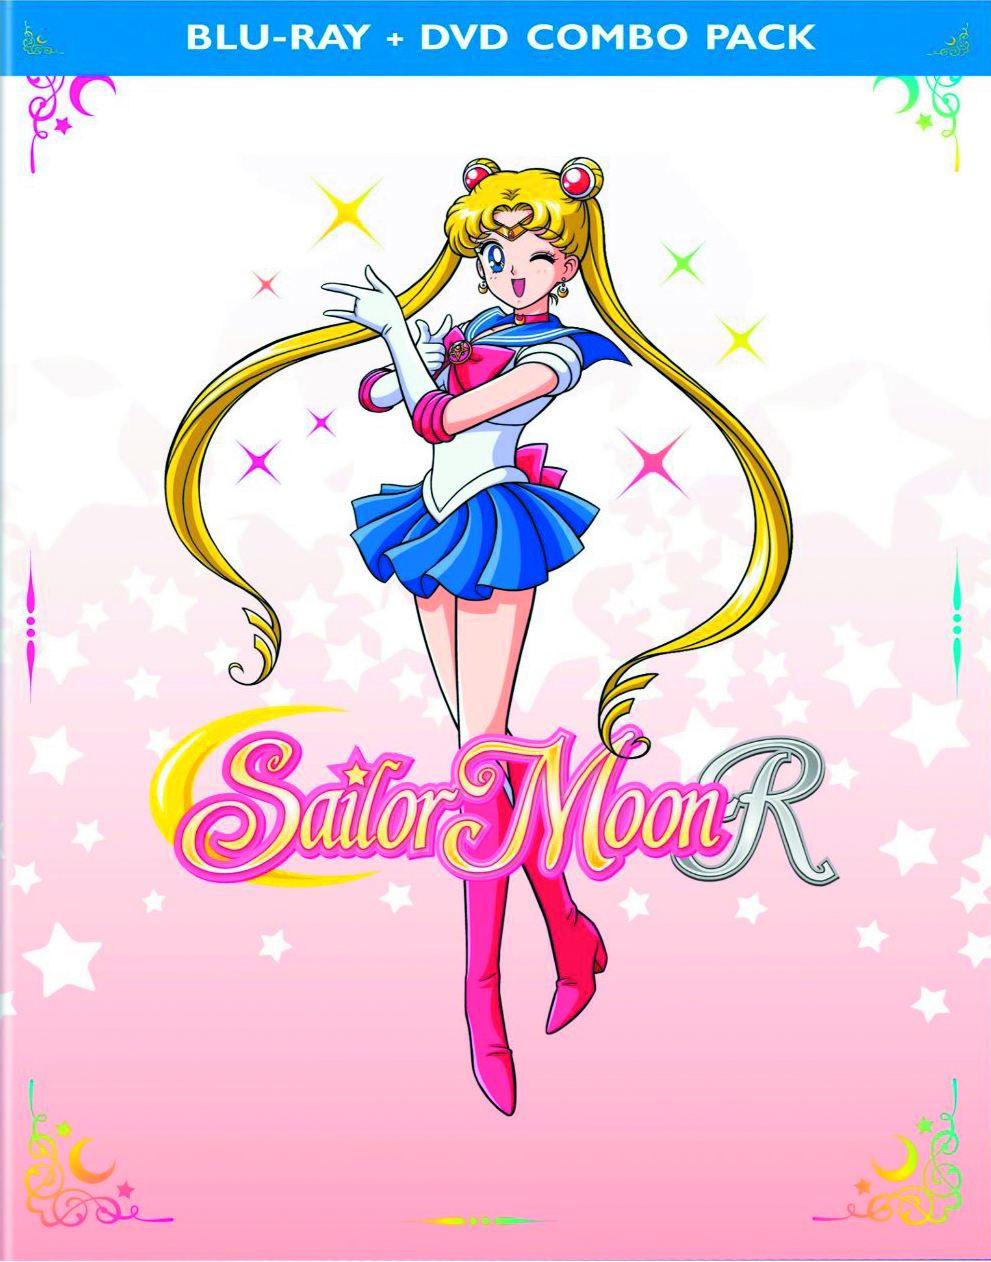 SAILOR MOON R LE BD + DVD SEA 02 PT 1